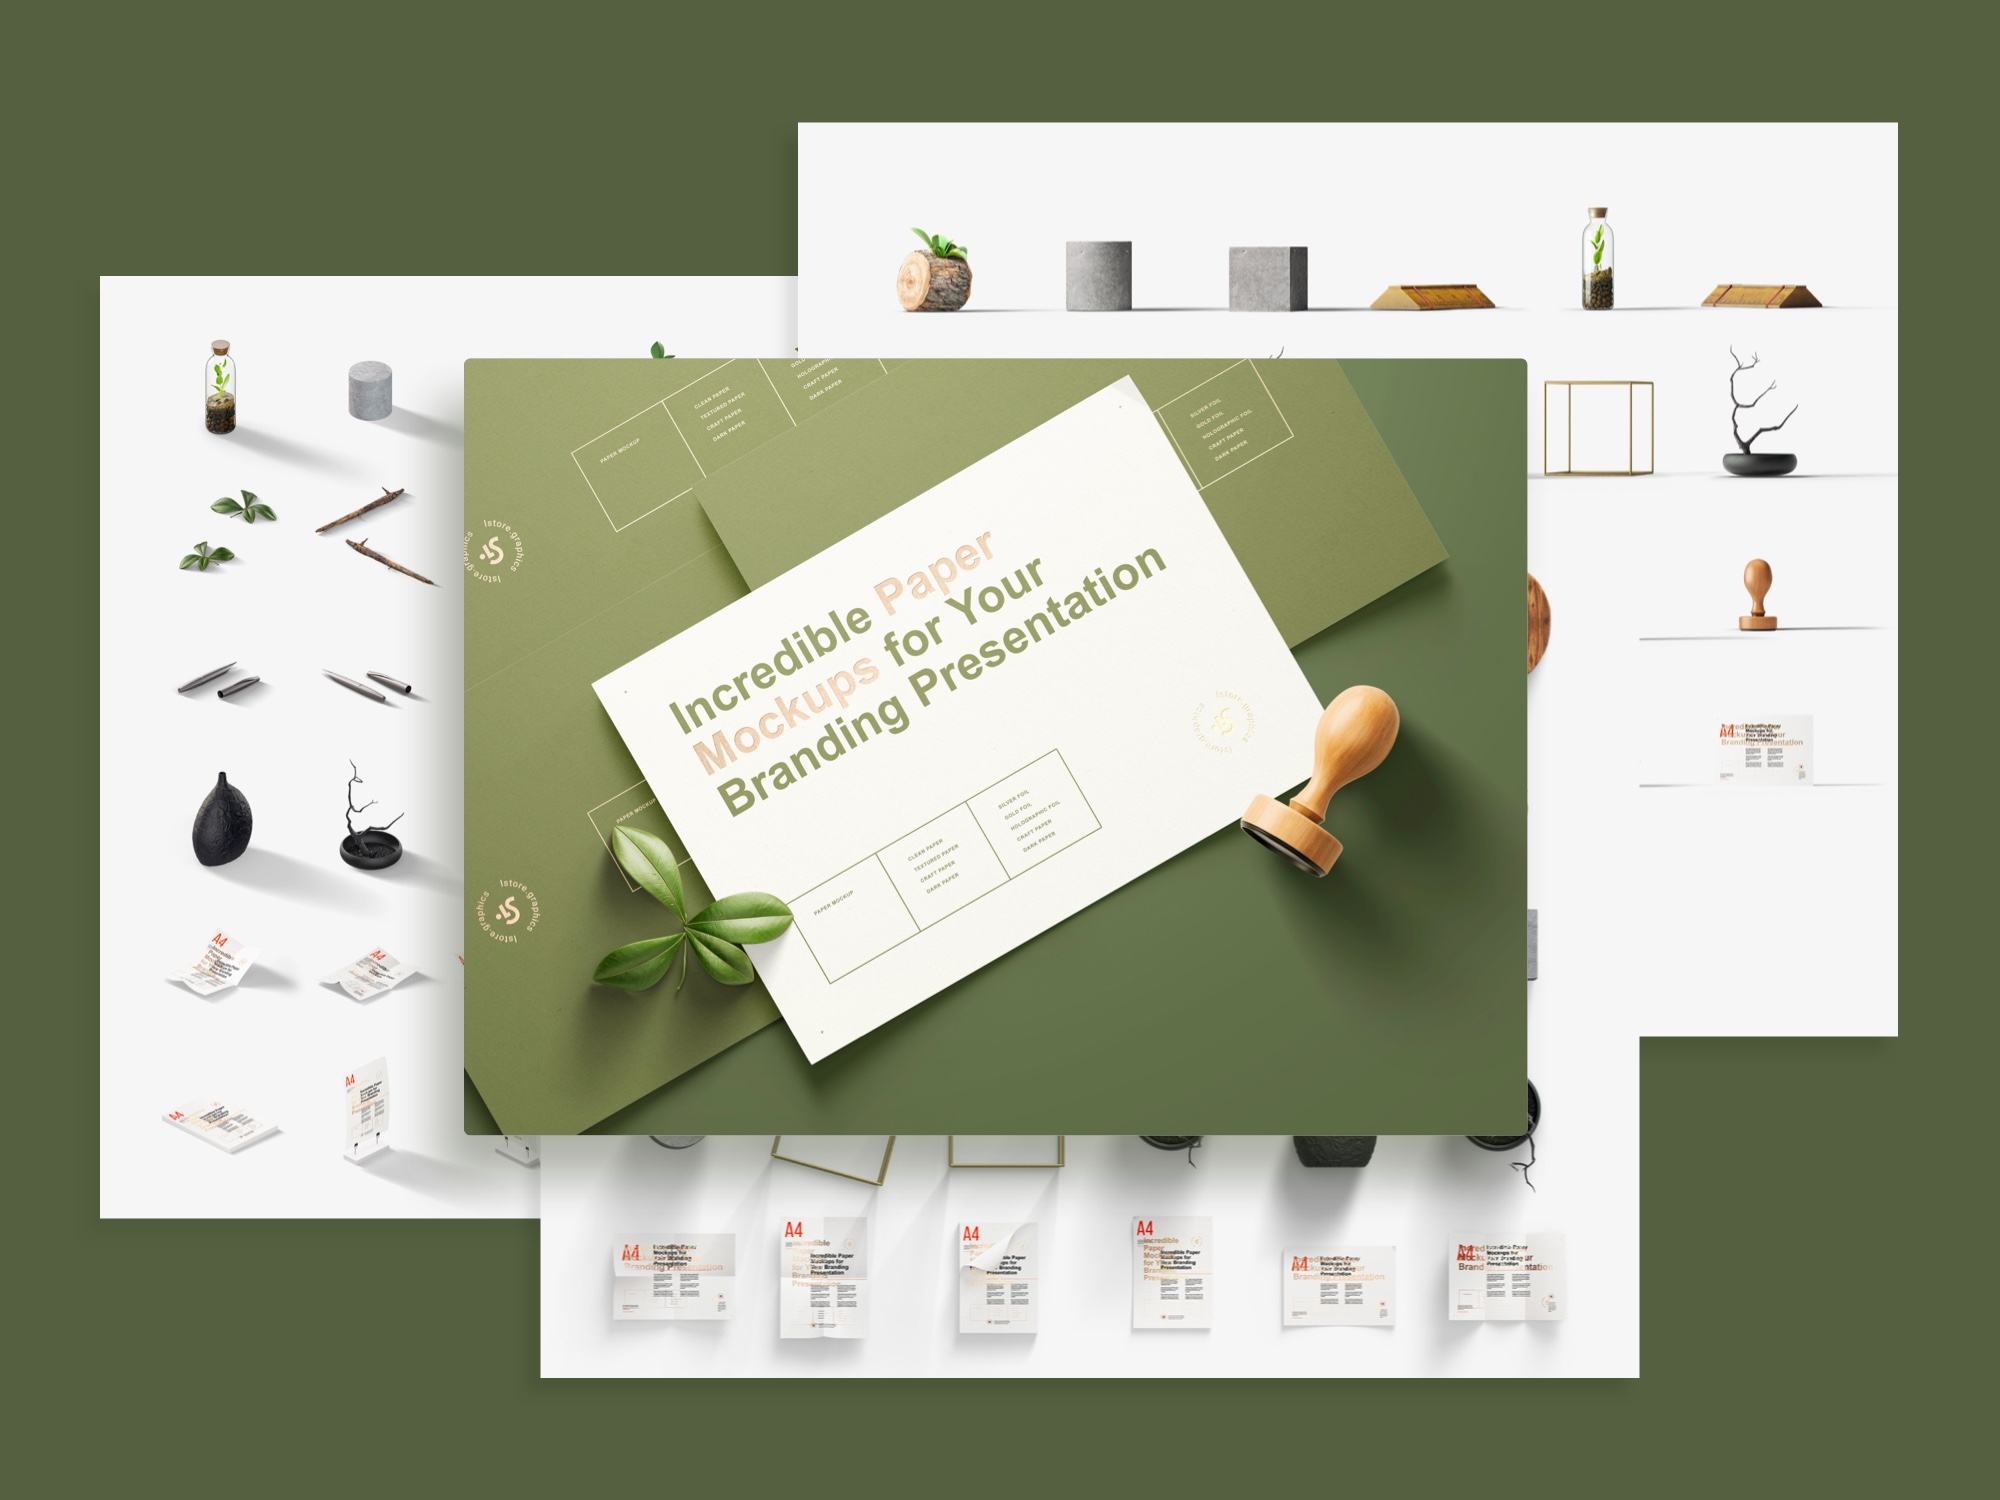 Three scene creators, live mockups, angled scenes, awesome mockup bundle